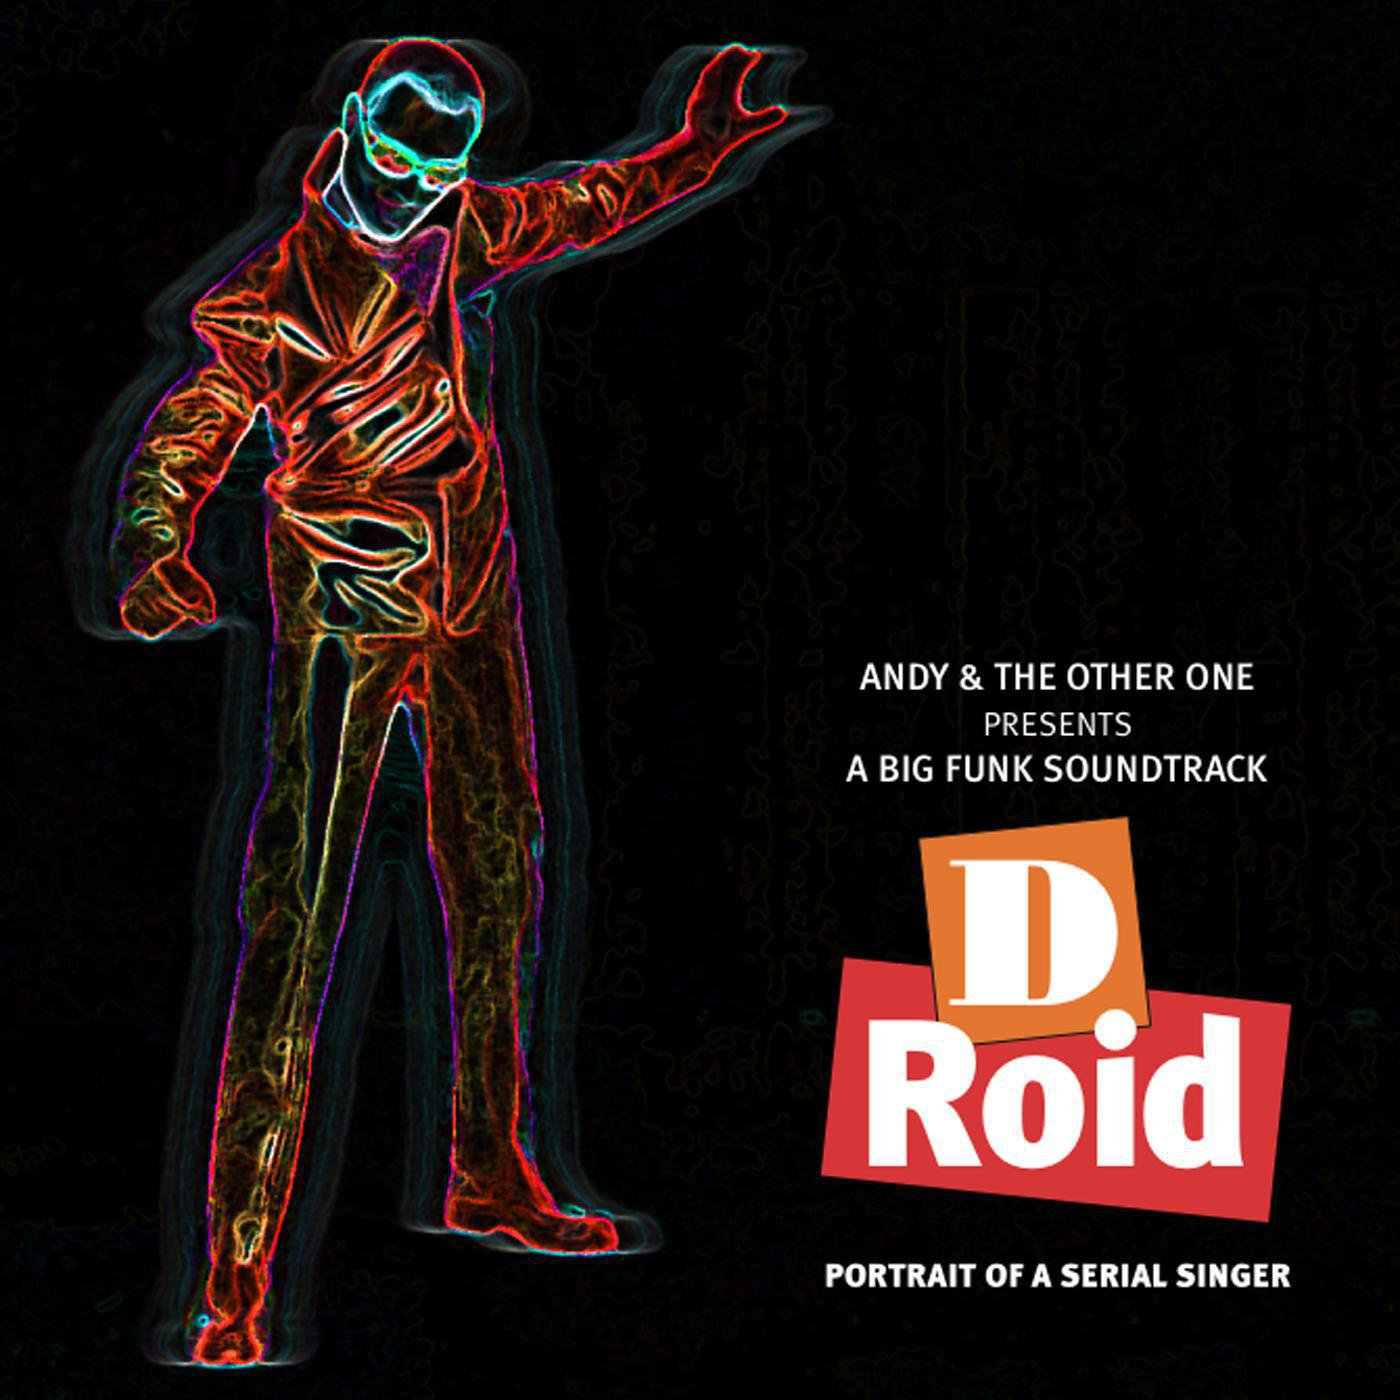 D-Roid: Portrait of a Serial Singer